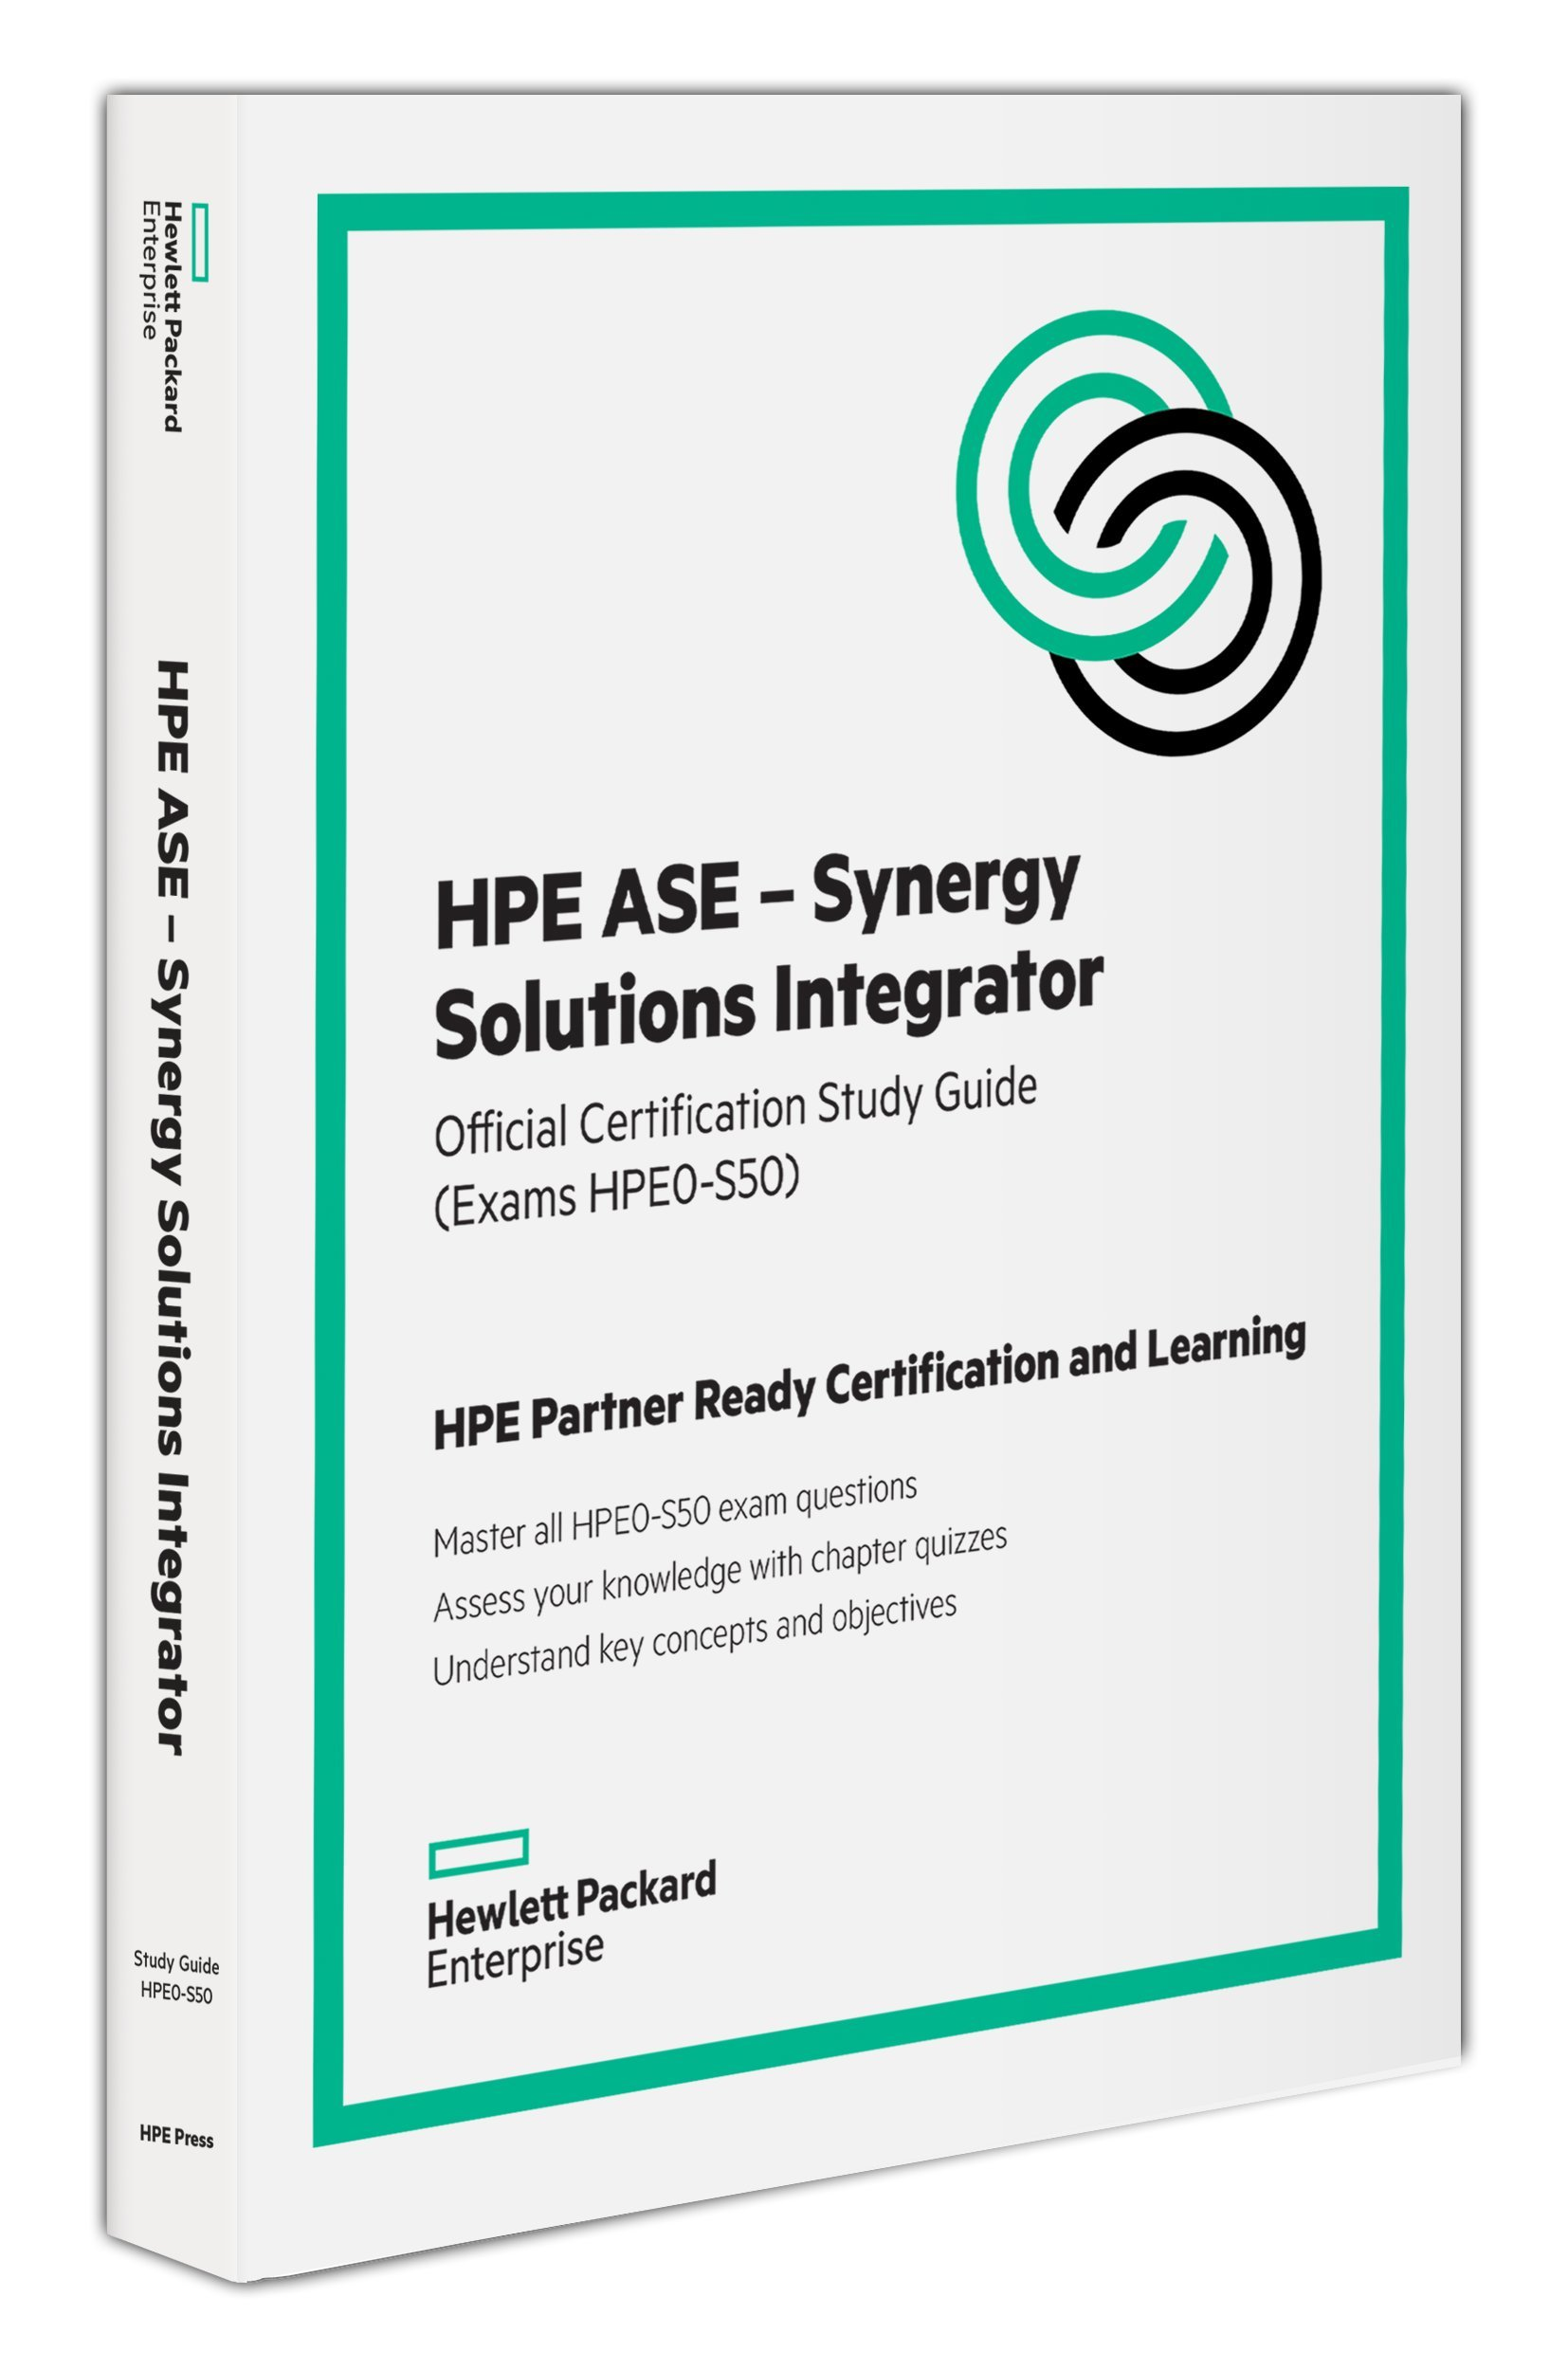 Hpe ase synergy solutions integrator official certification hpe ase synergy solutions integrator official certification study guide hpe0 s50 amazon ken radford fremdsprachige bcher 1betcityfo Choice Image